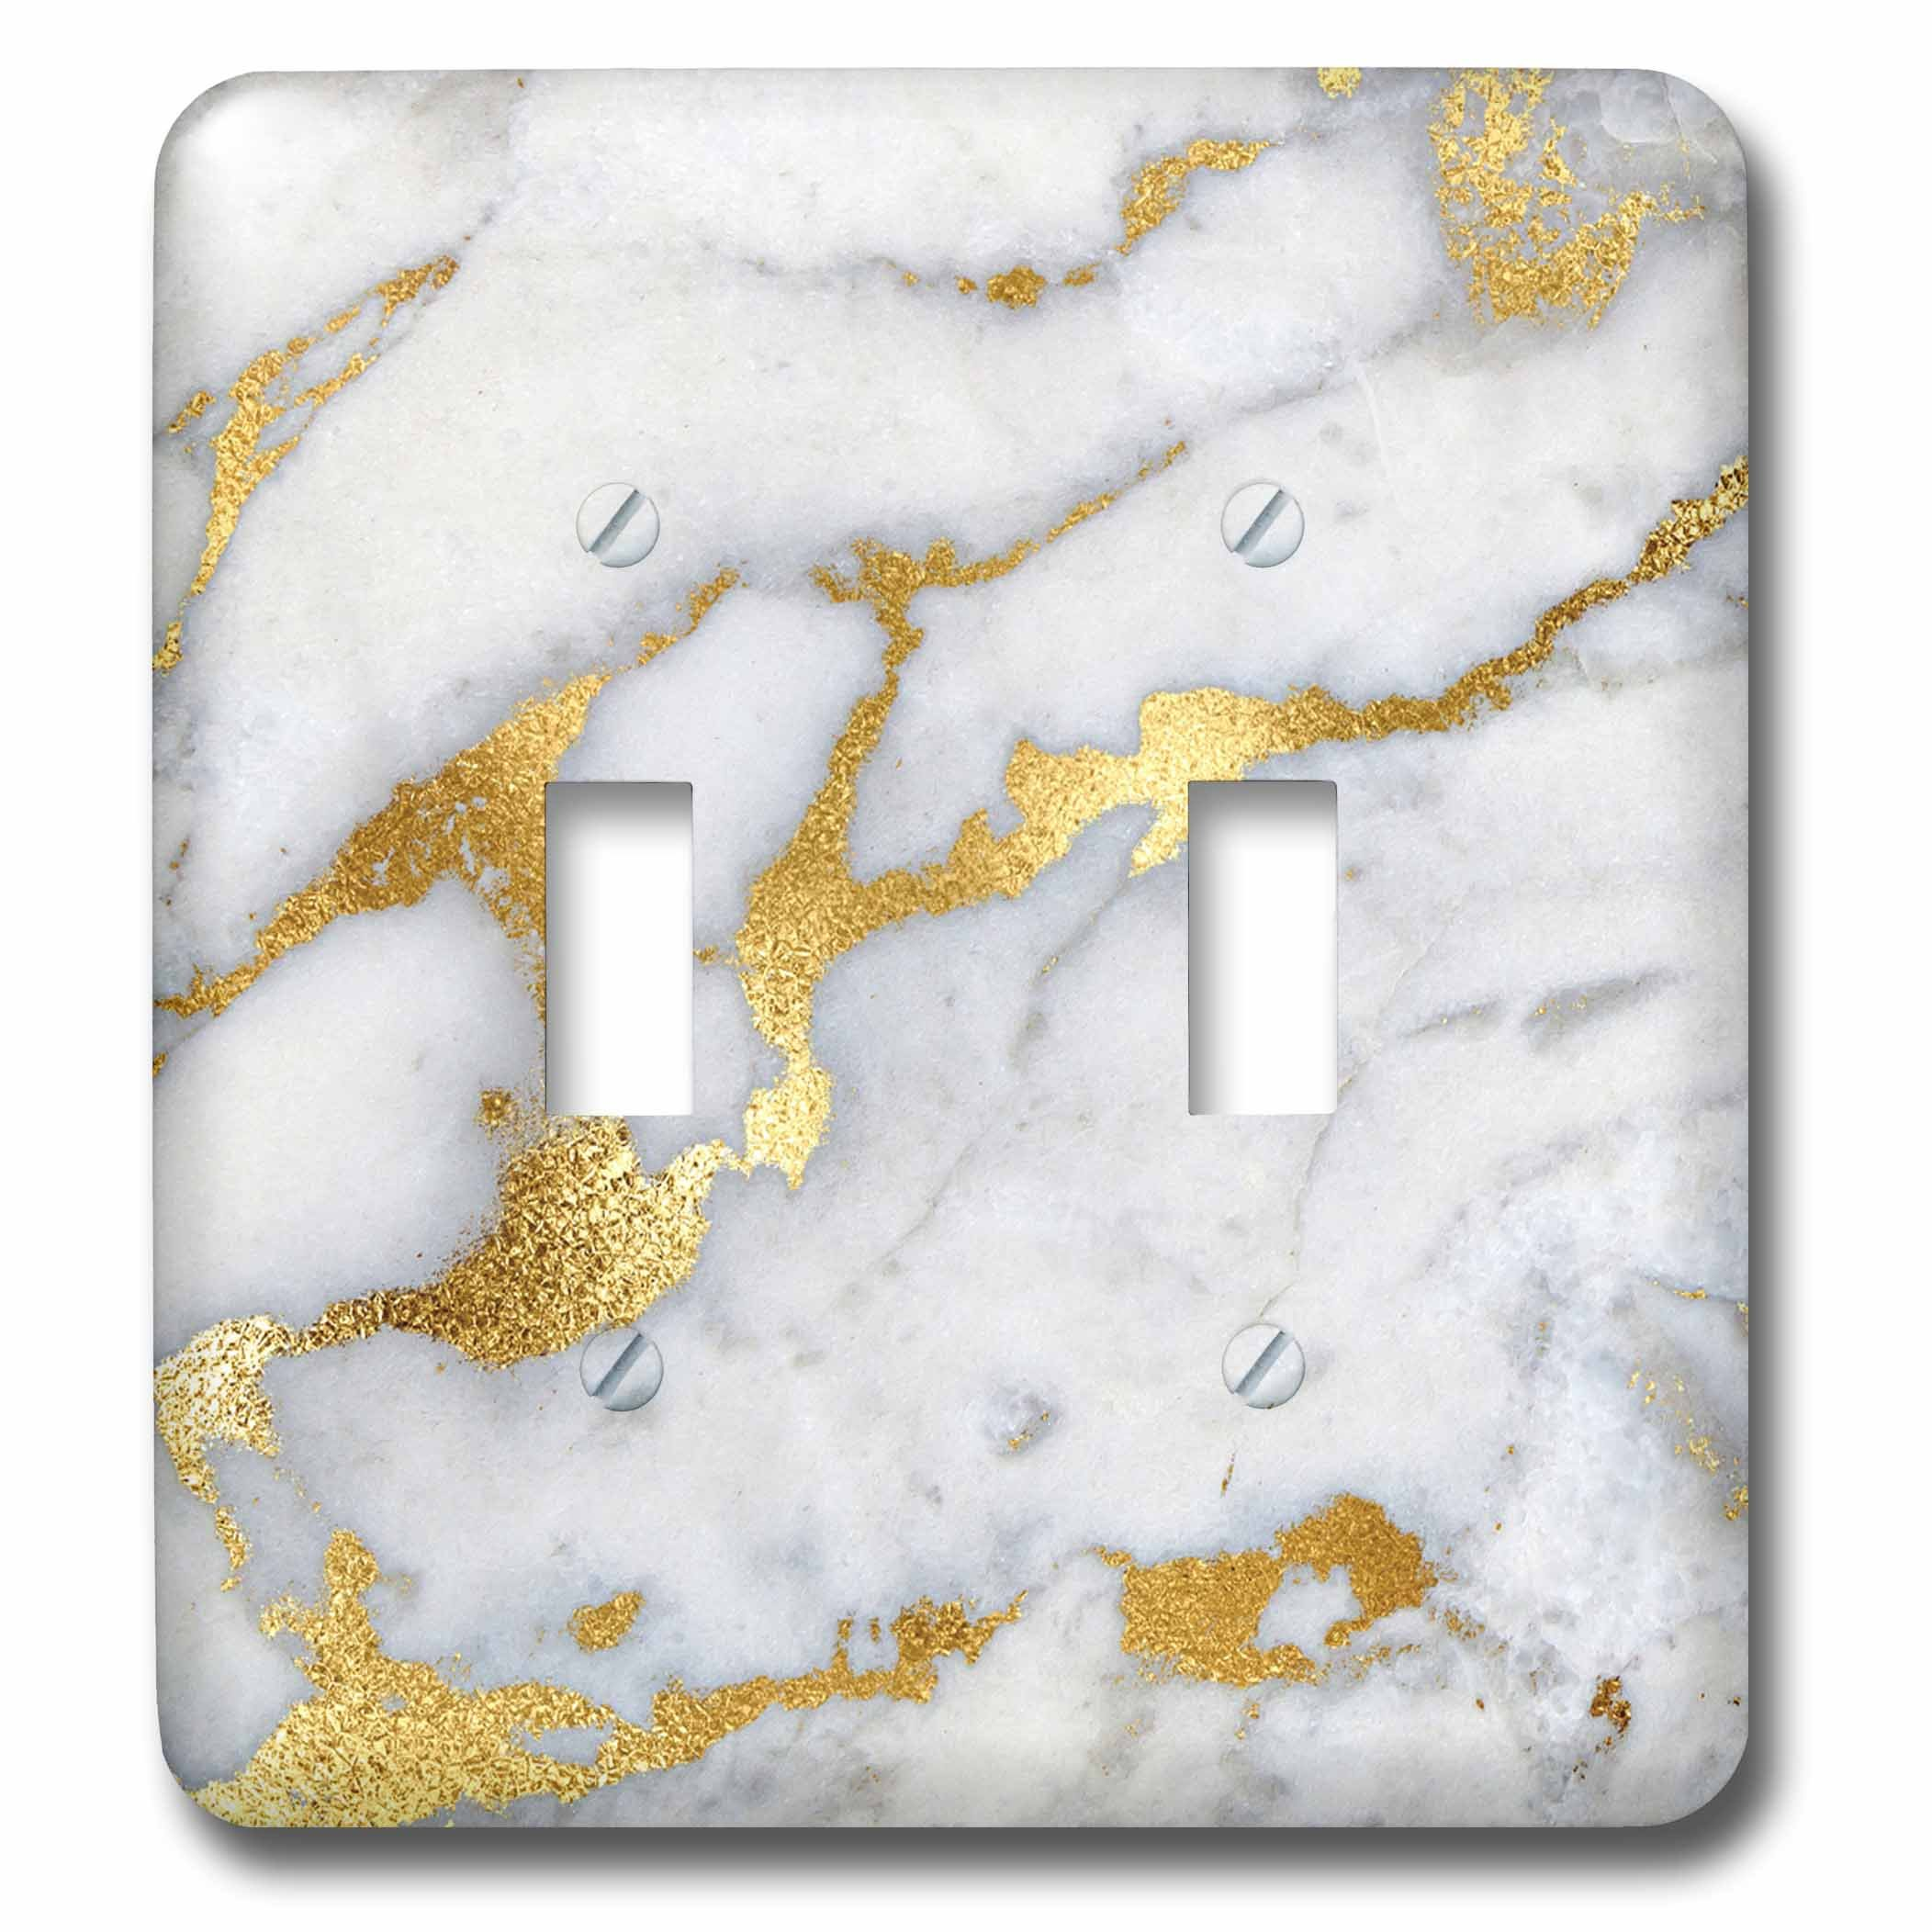 3dRose LSP_268835_2 Image of Luxury Grey Gold Gem Stone Marble Glitter Metallic Faux Print Toggle Switch, Mixed by 3dRose (Image #1)